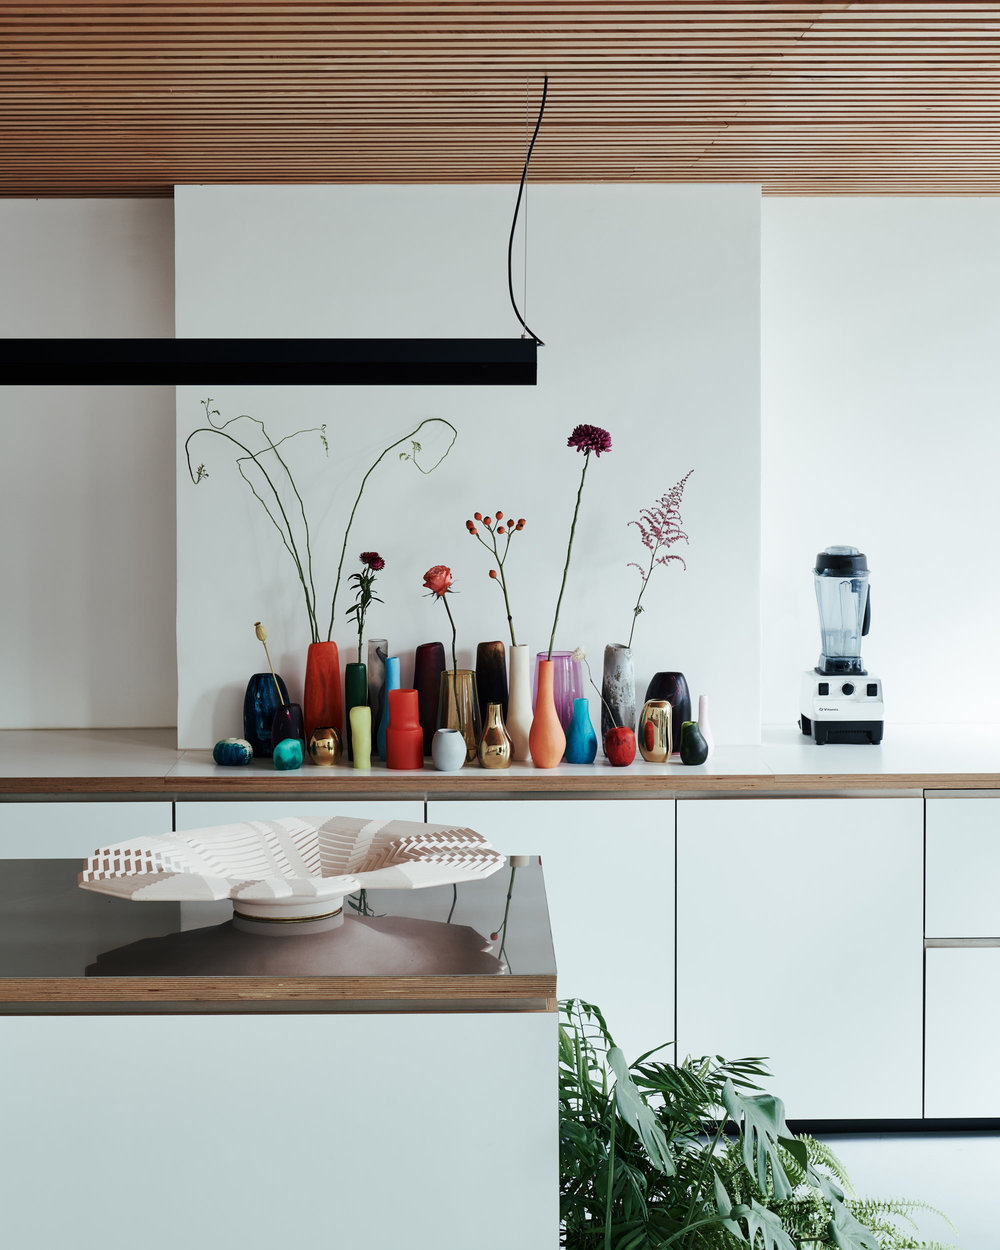 The Vibrancy of Eclectic Design: Blue House Curated by Morgwn Rimel and House of Grey on Anniversary Magazine